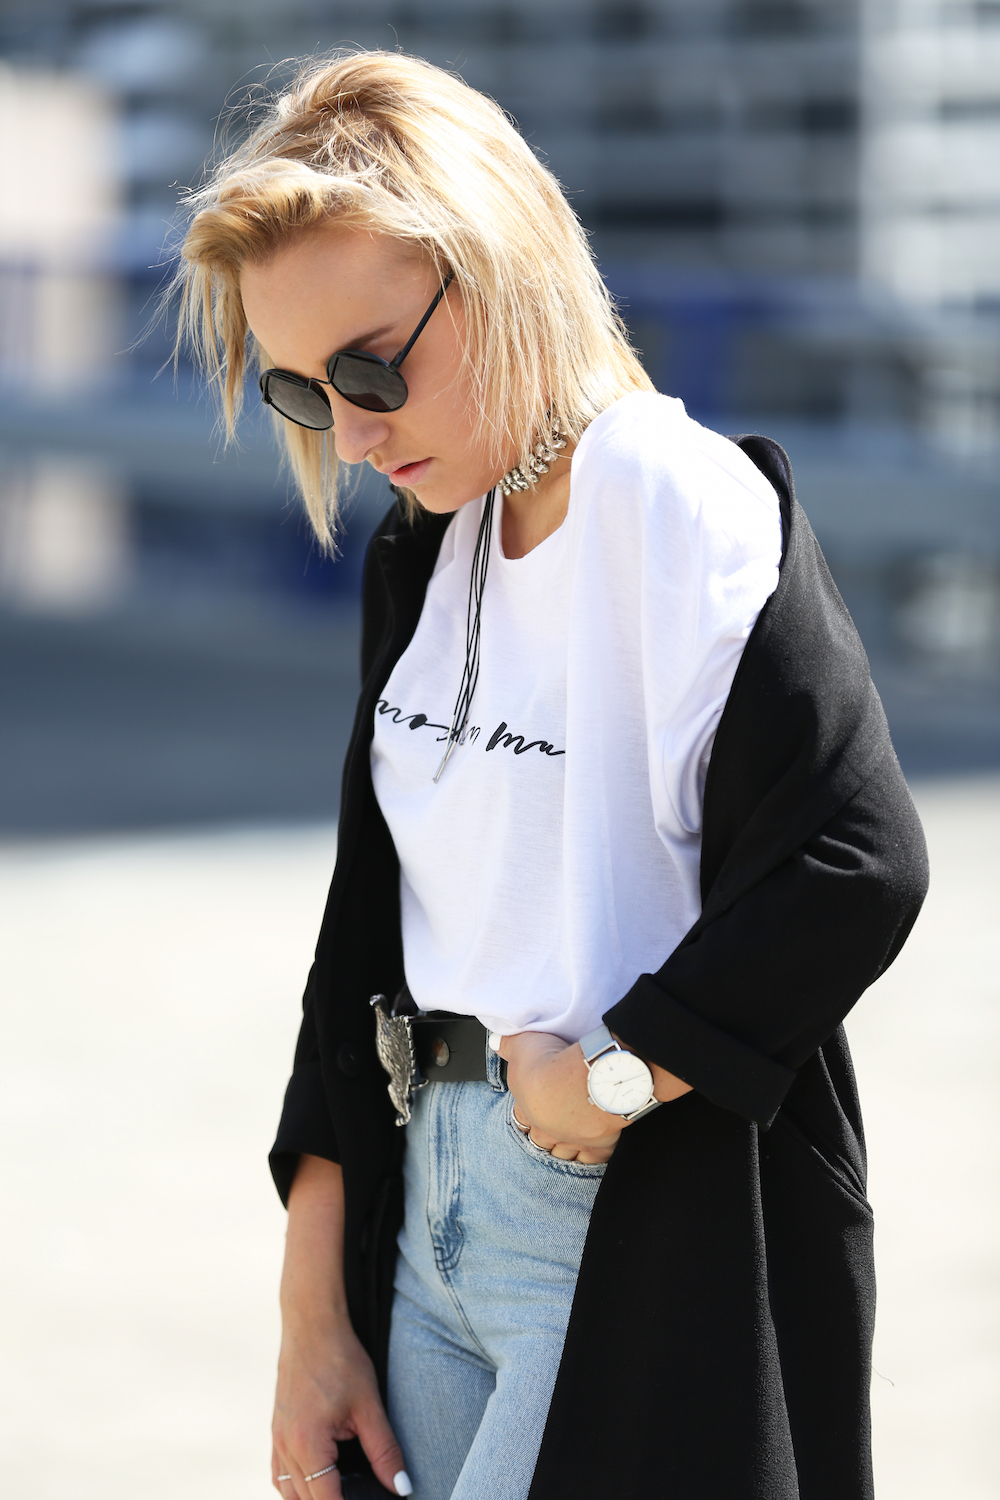 Staple the Label Modern Muse tee